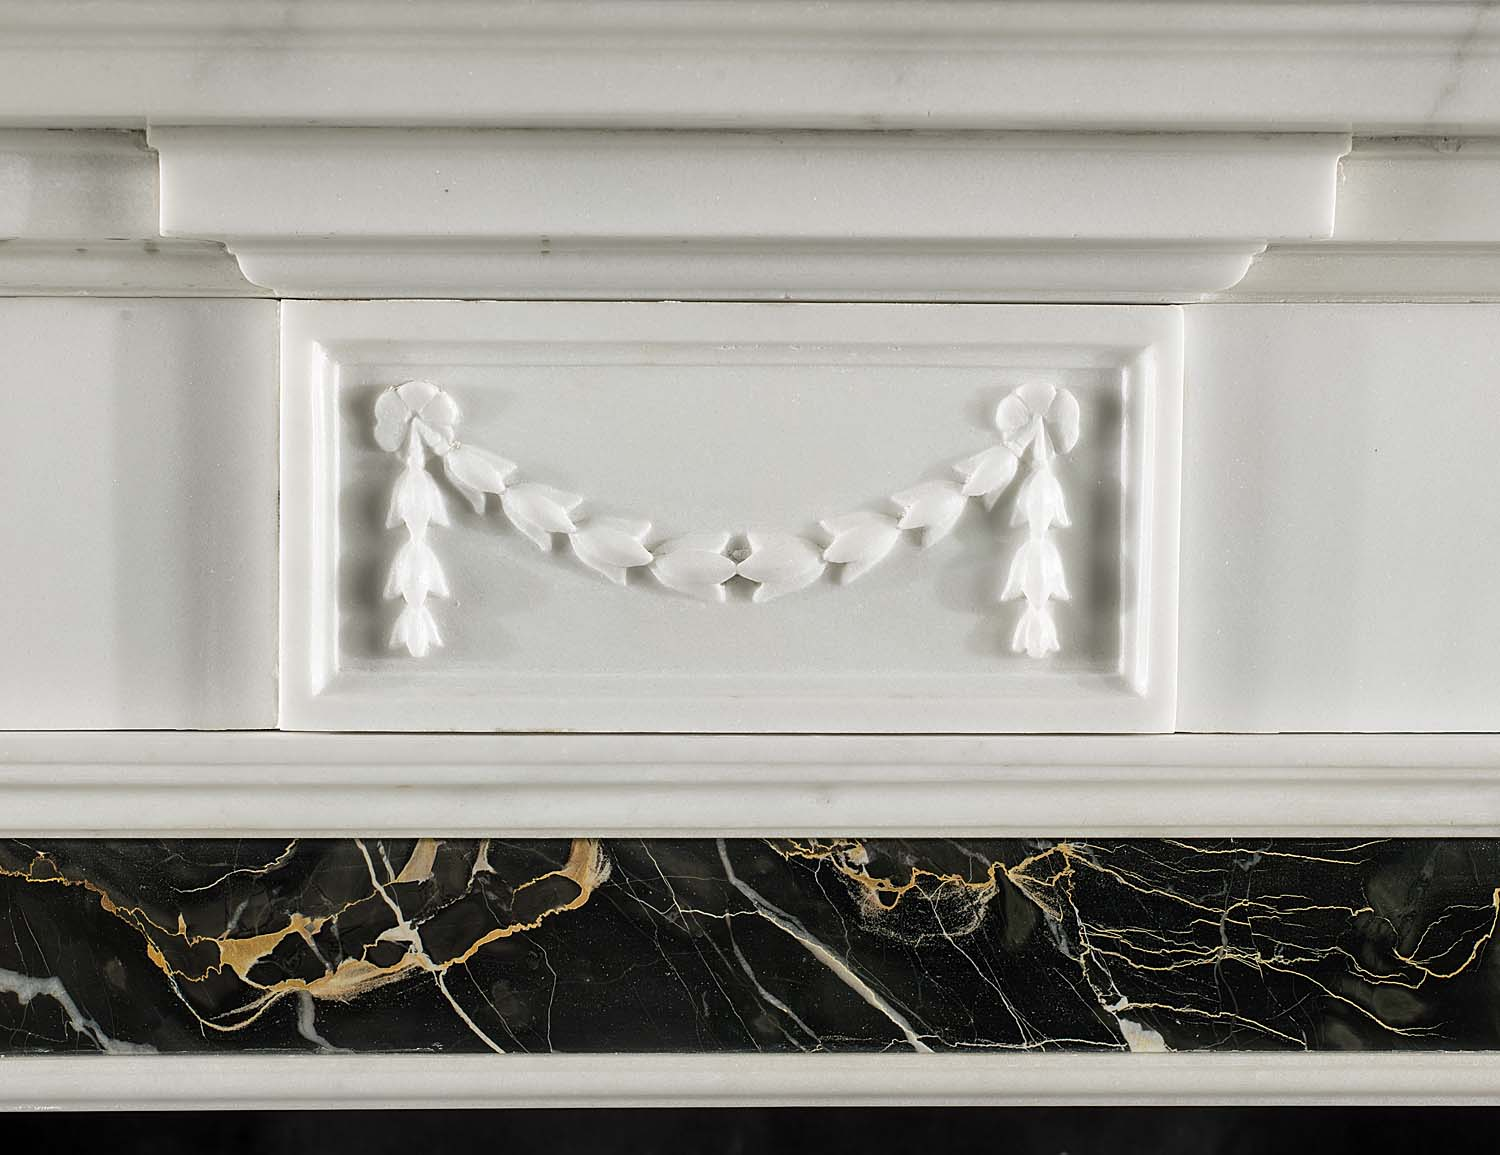 A Georgian style statuary and portoro marble antique fireplace surround